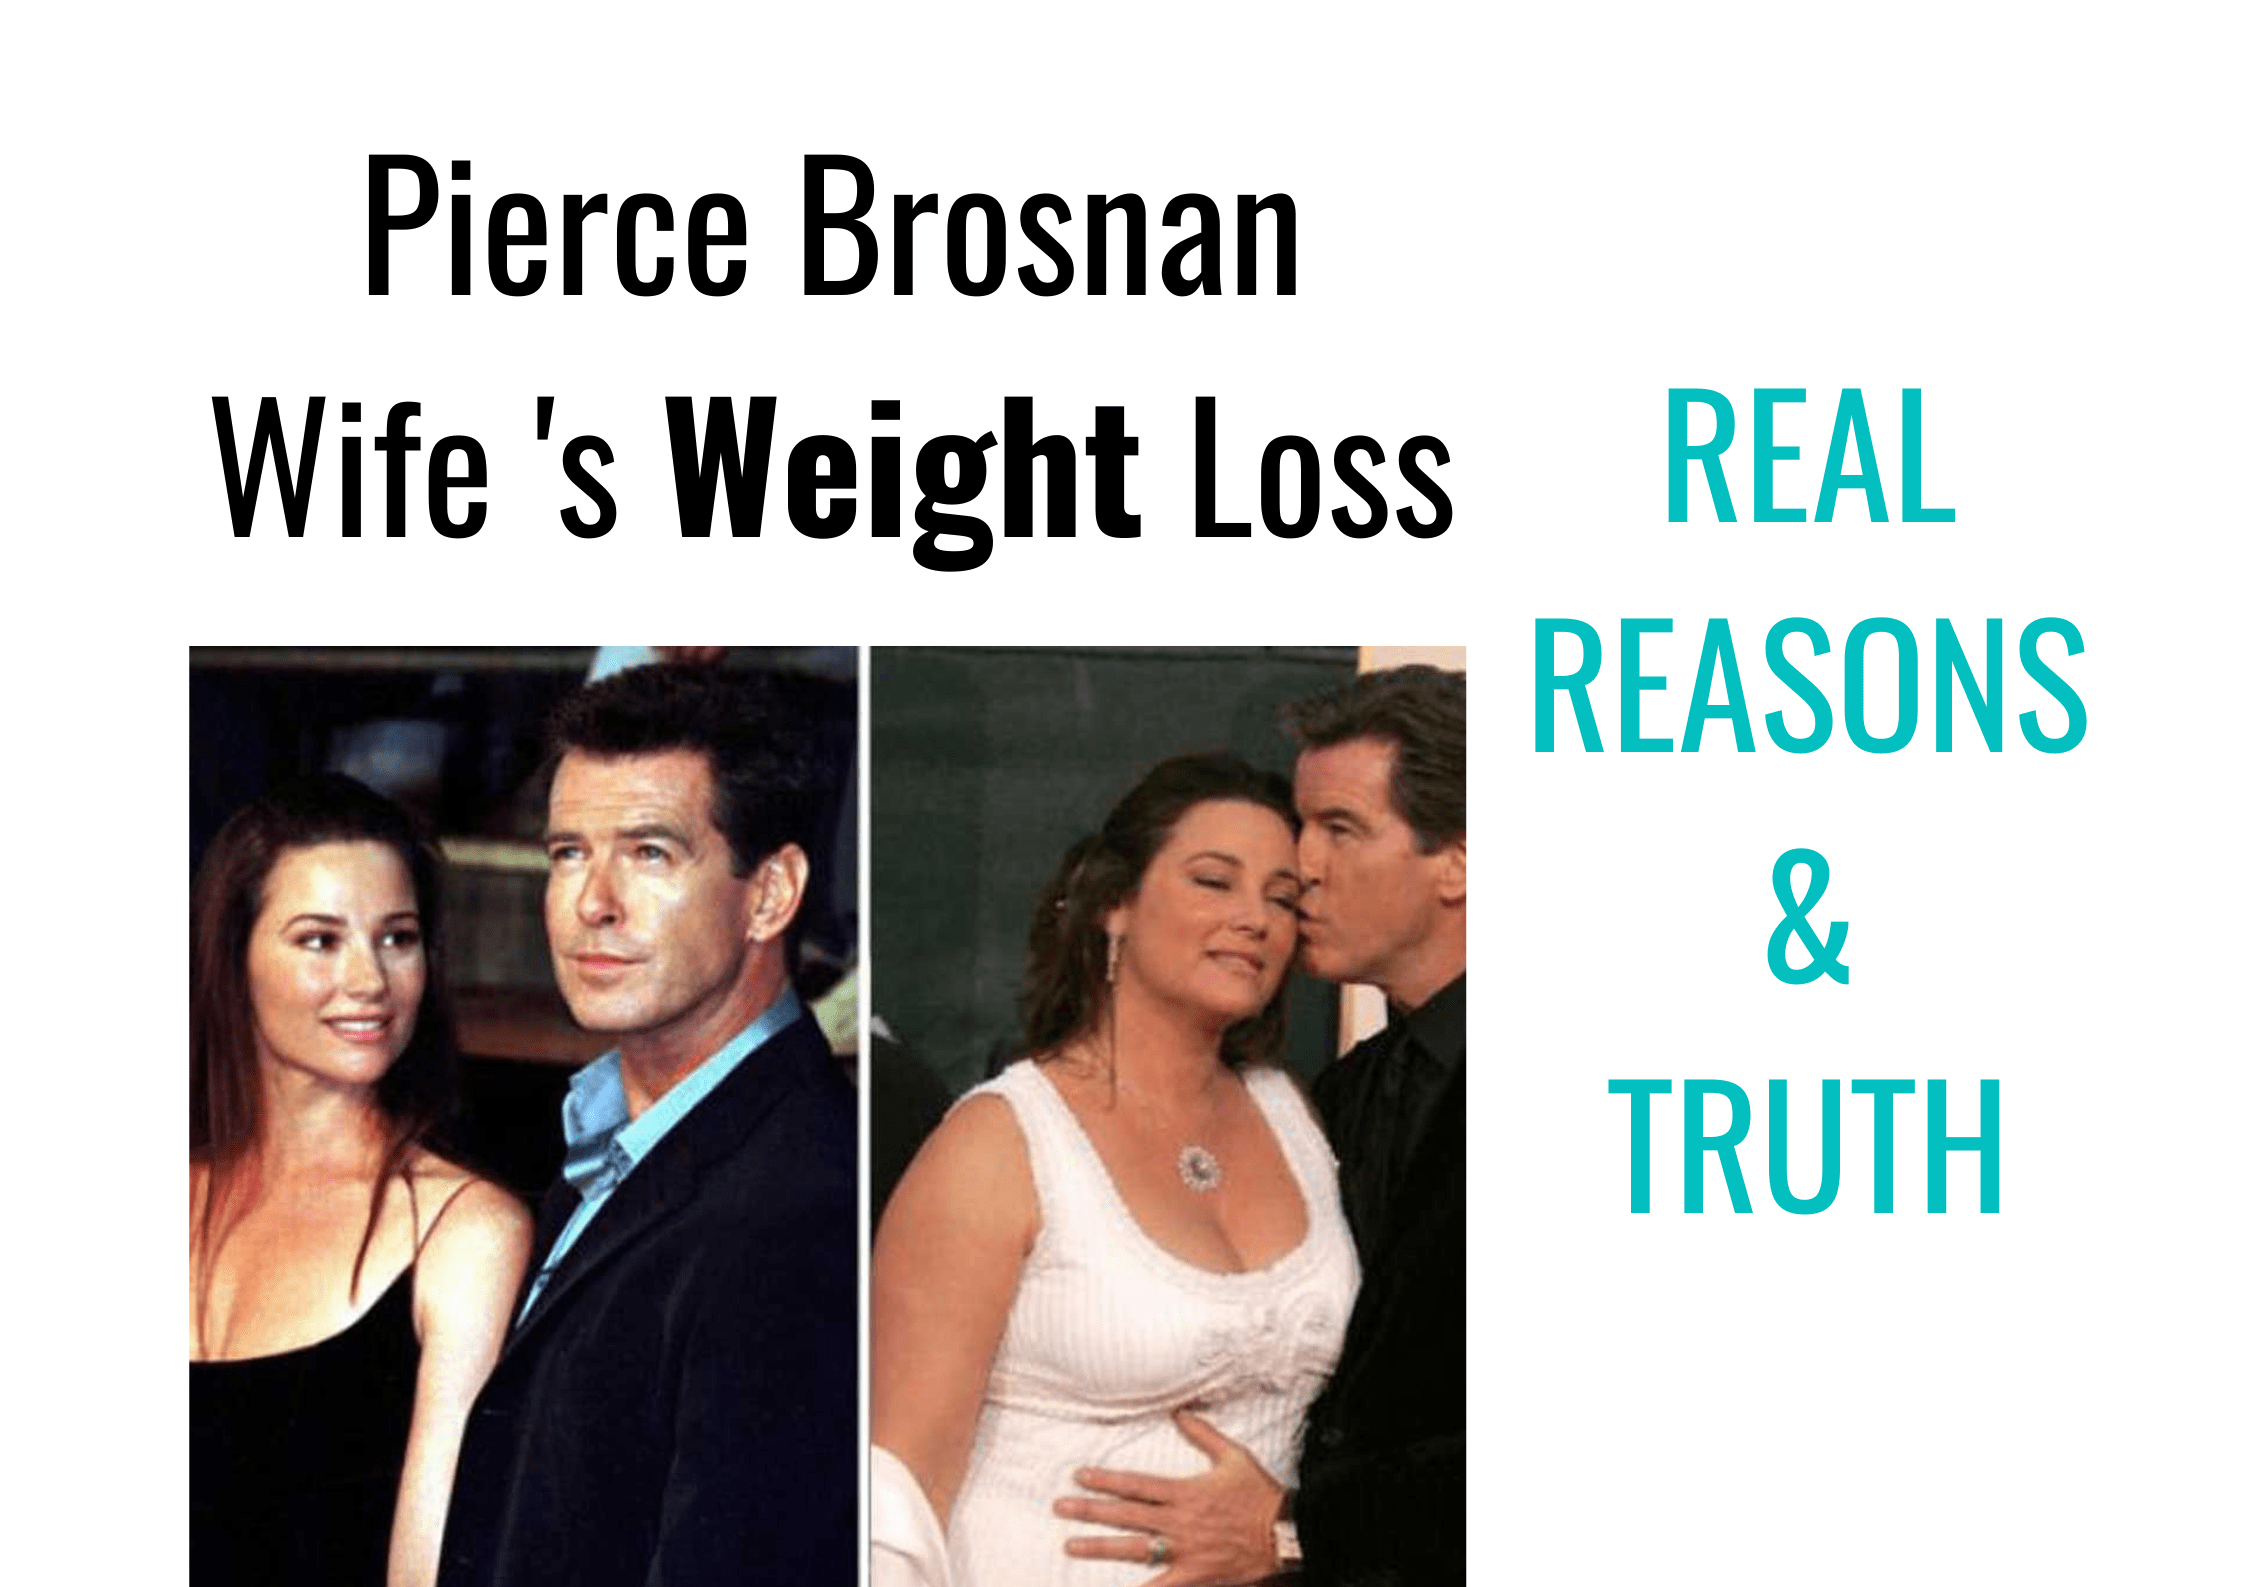 Pierce Brosnan Wife Weight Loss